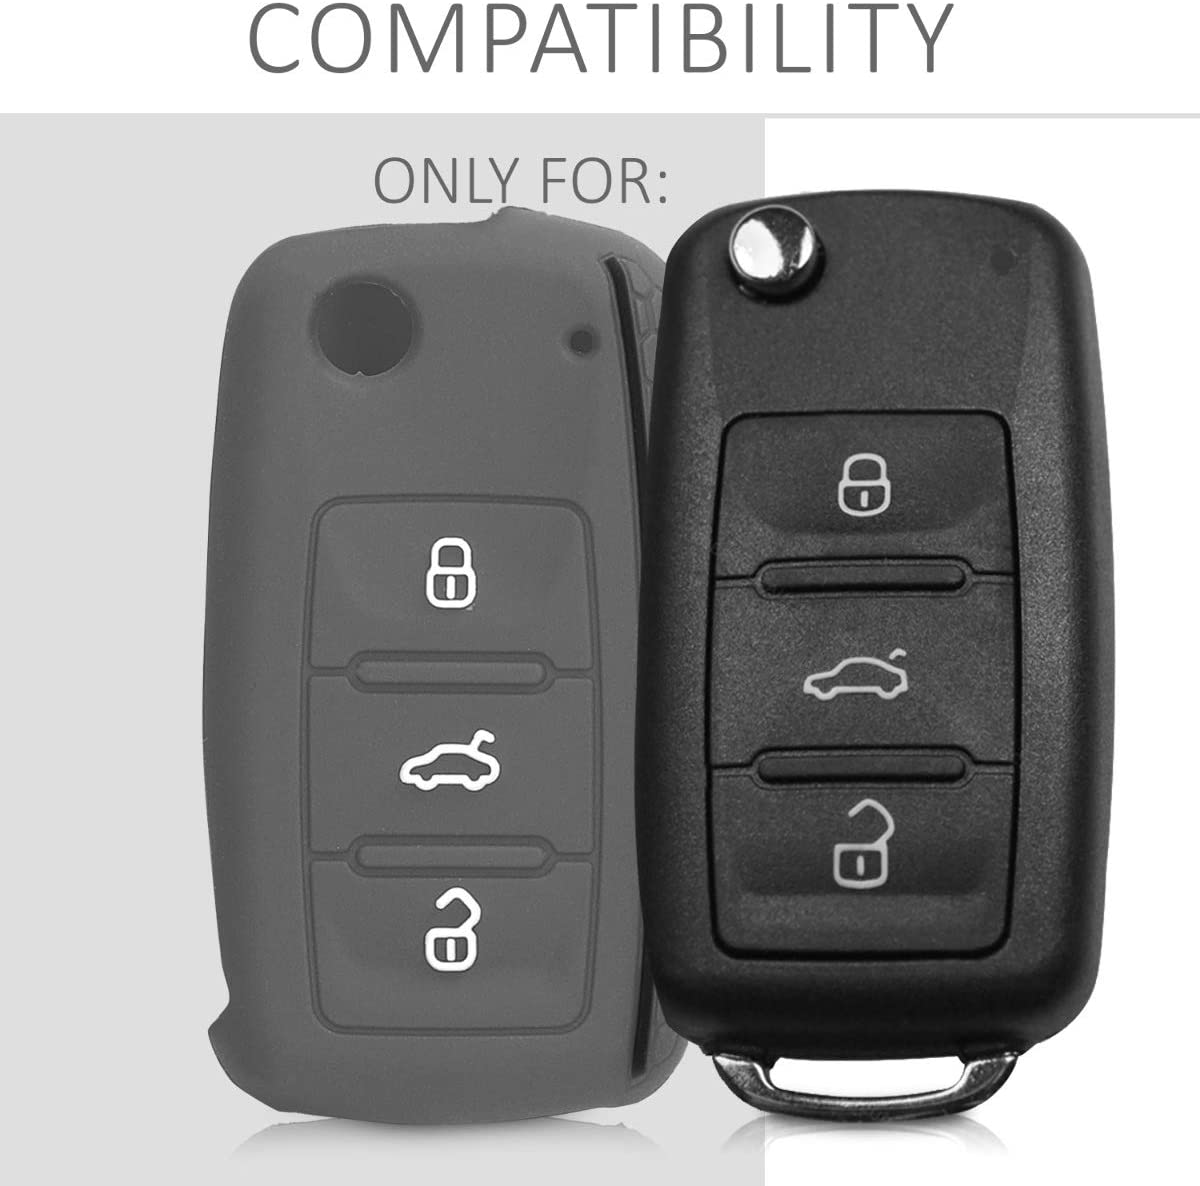 Light Grey//Black kwmobile Car Key Cover for VW Skoda Seat Silicone Protective Key Fob Cover for VW Skoda SEAT 3 Button Car Key